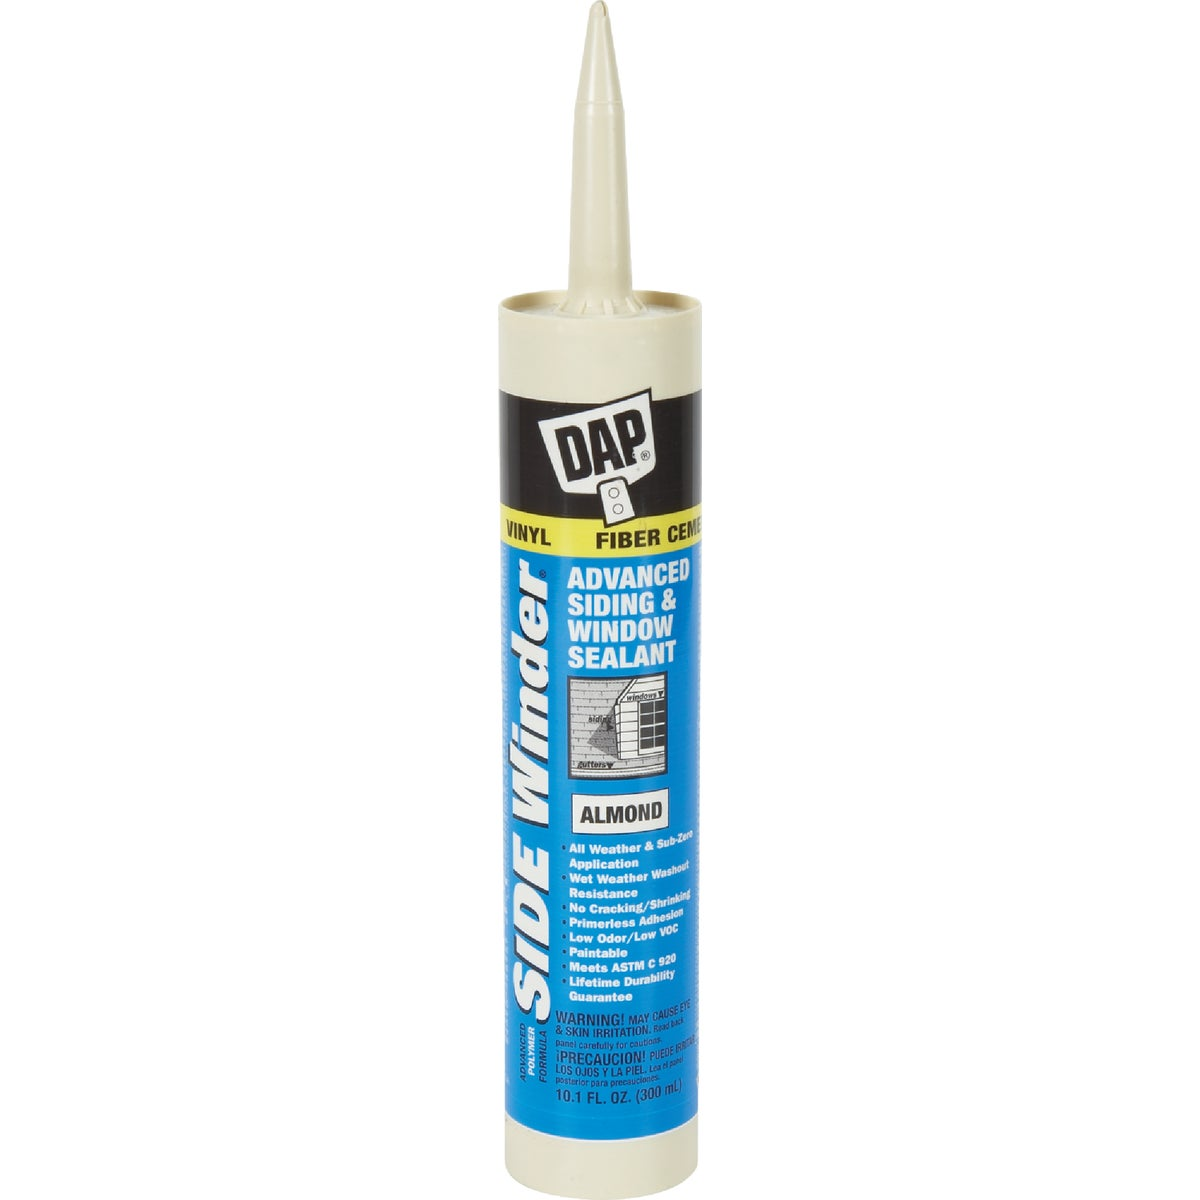 ALMOND SIDEWINDR SEALANT - 00813 by Dap Inc